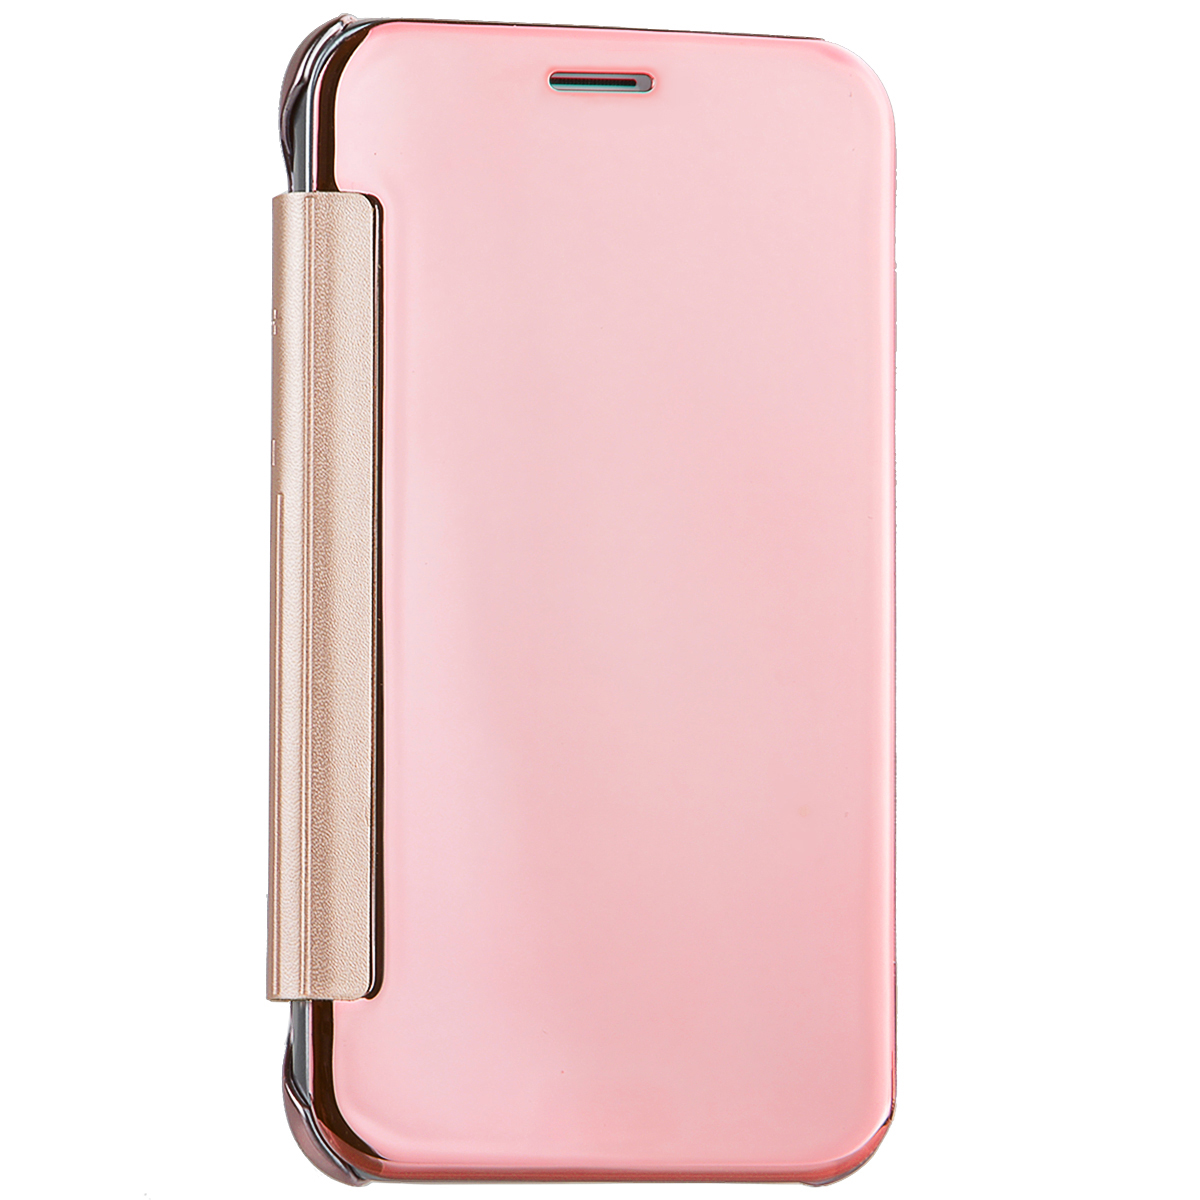 Us 551 9 Offyokata Luxury Mirror Rose Gold Flip Case For Samsung Galaxy S6 S7 Edge J1 J5 J7 A3 A5 2016 J710 Hard Phone Protect Cover In Flip Cases